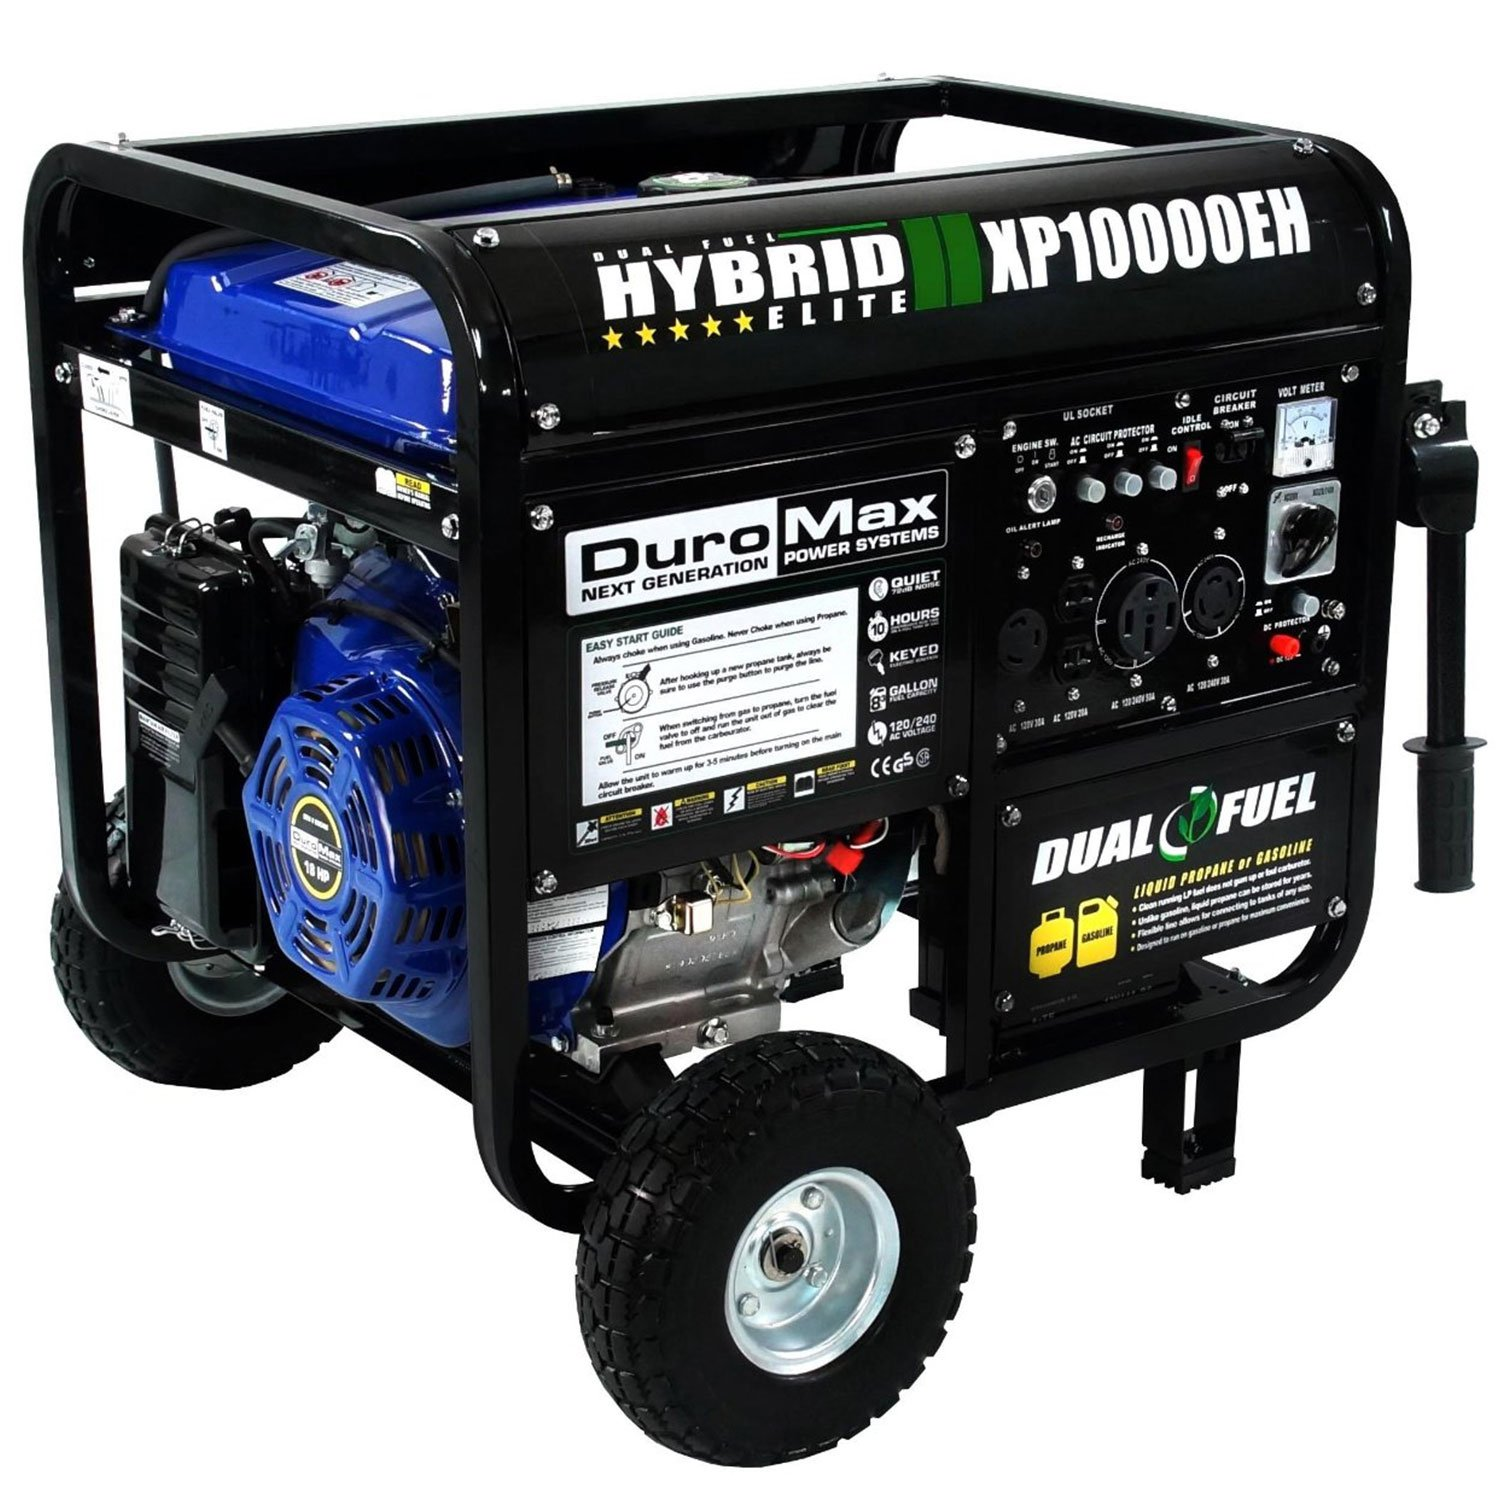 Duromax XP10000EH 10000 Watt Dual Fuel Hybrid Generator W Elec. Start 50-State (Refurbished)